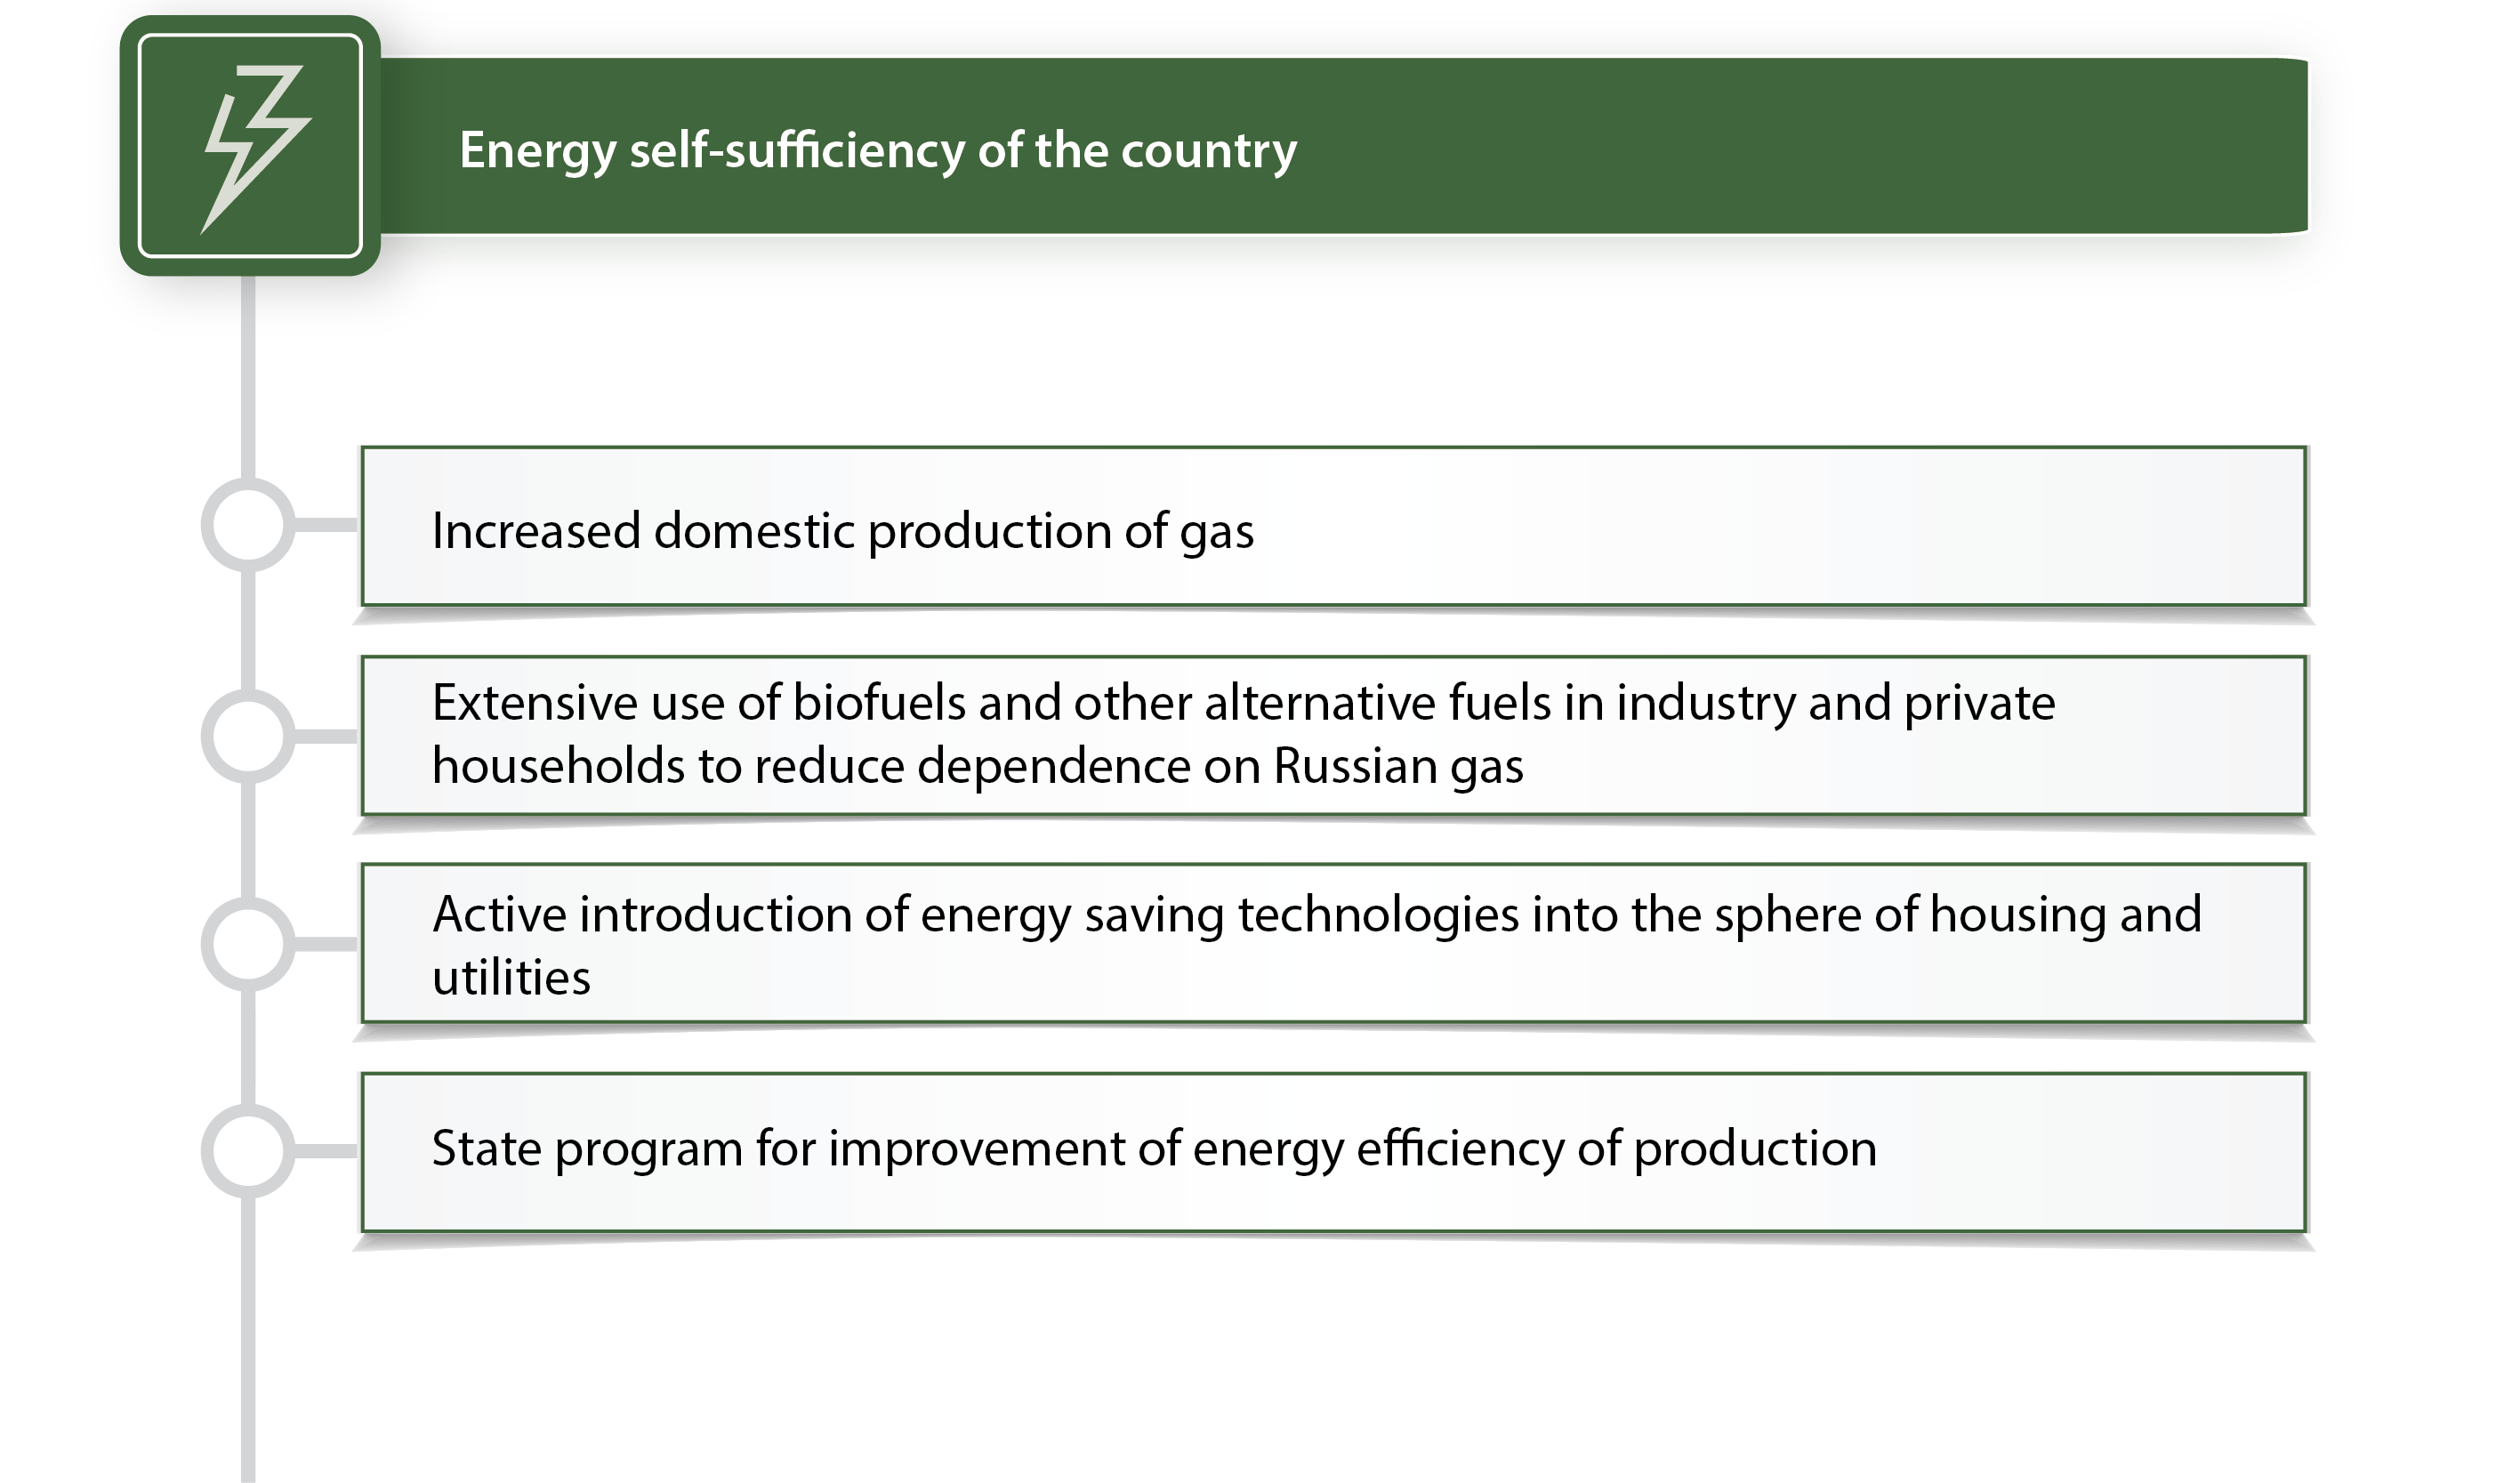 Energy self-sufficiency of the country